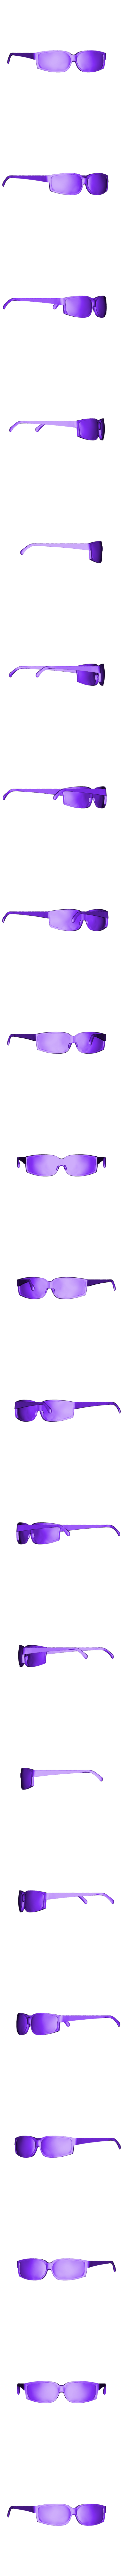 Lunettes.stl Download STL file NAUGHTY JEAN CLAUDE VAN DAMME • 3D printable template, thierry3D